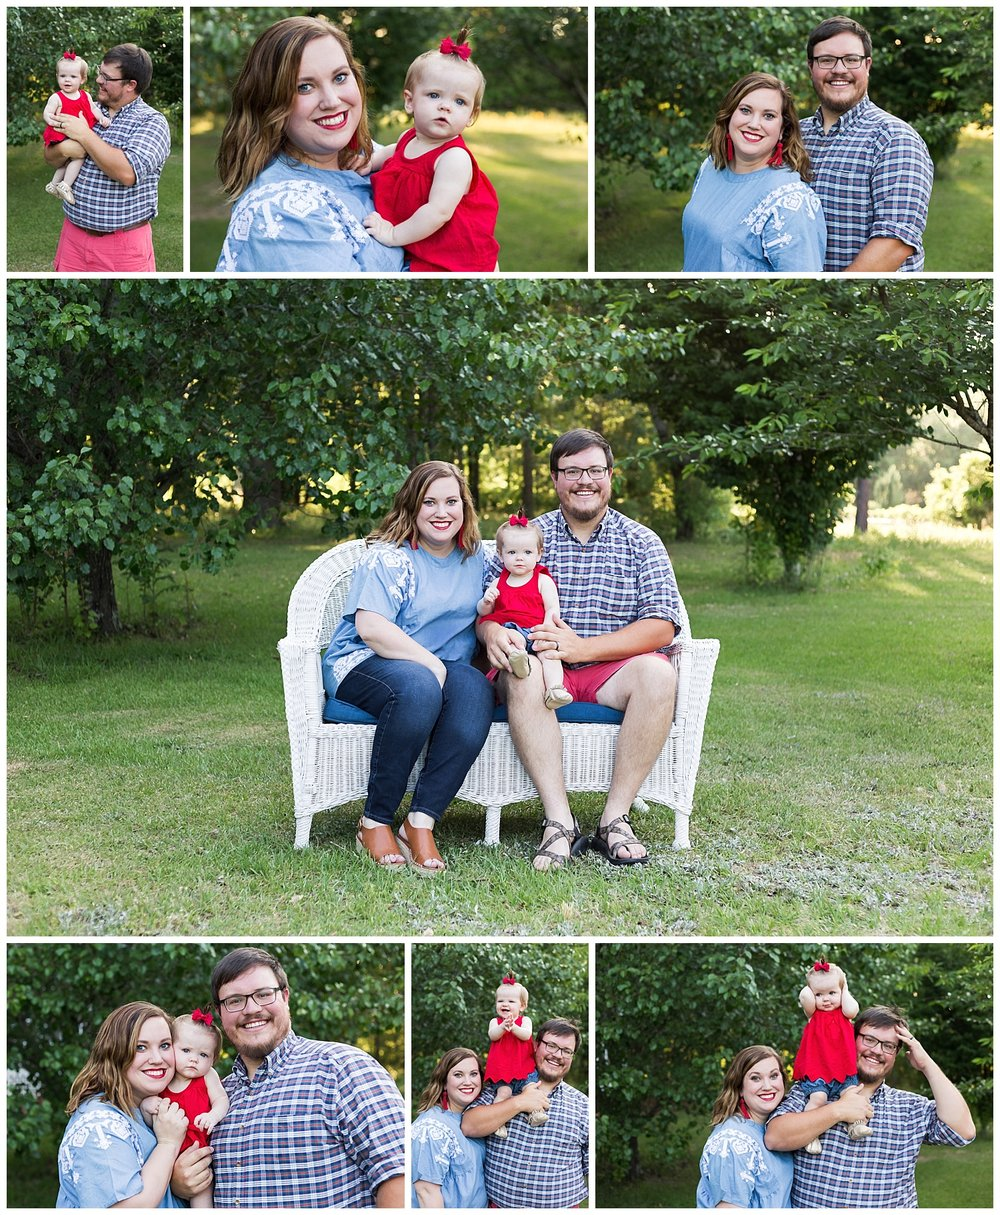 auburn family photographer lauren beesley photography